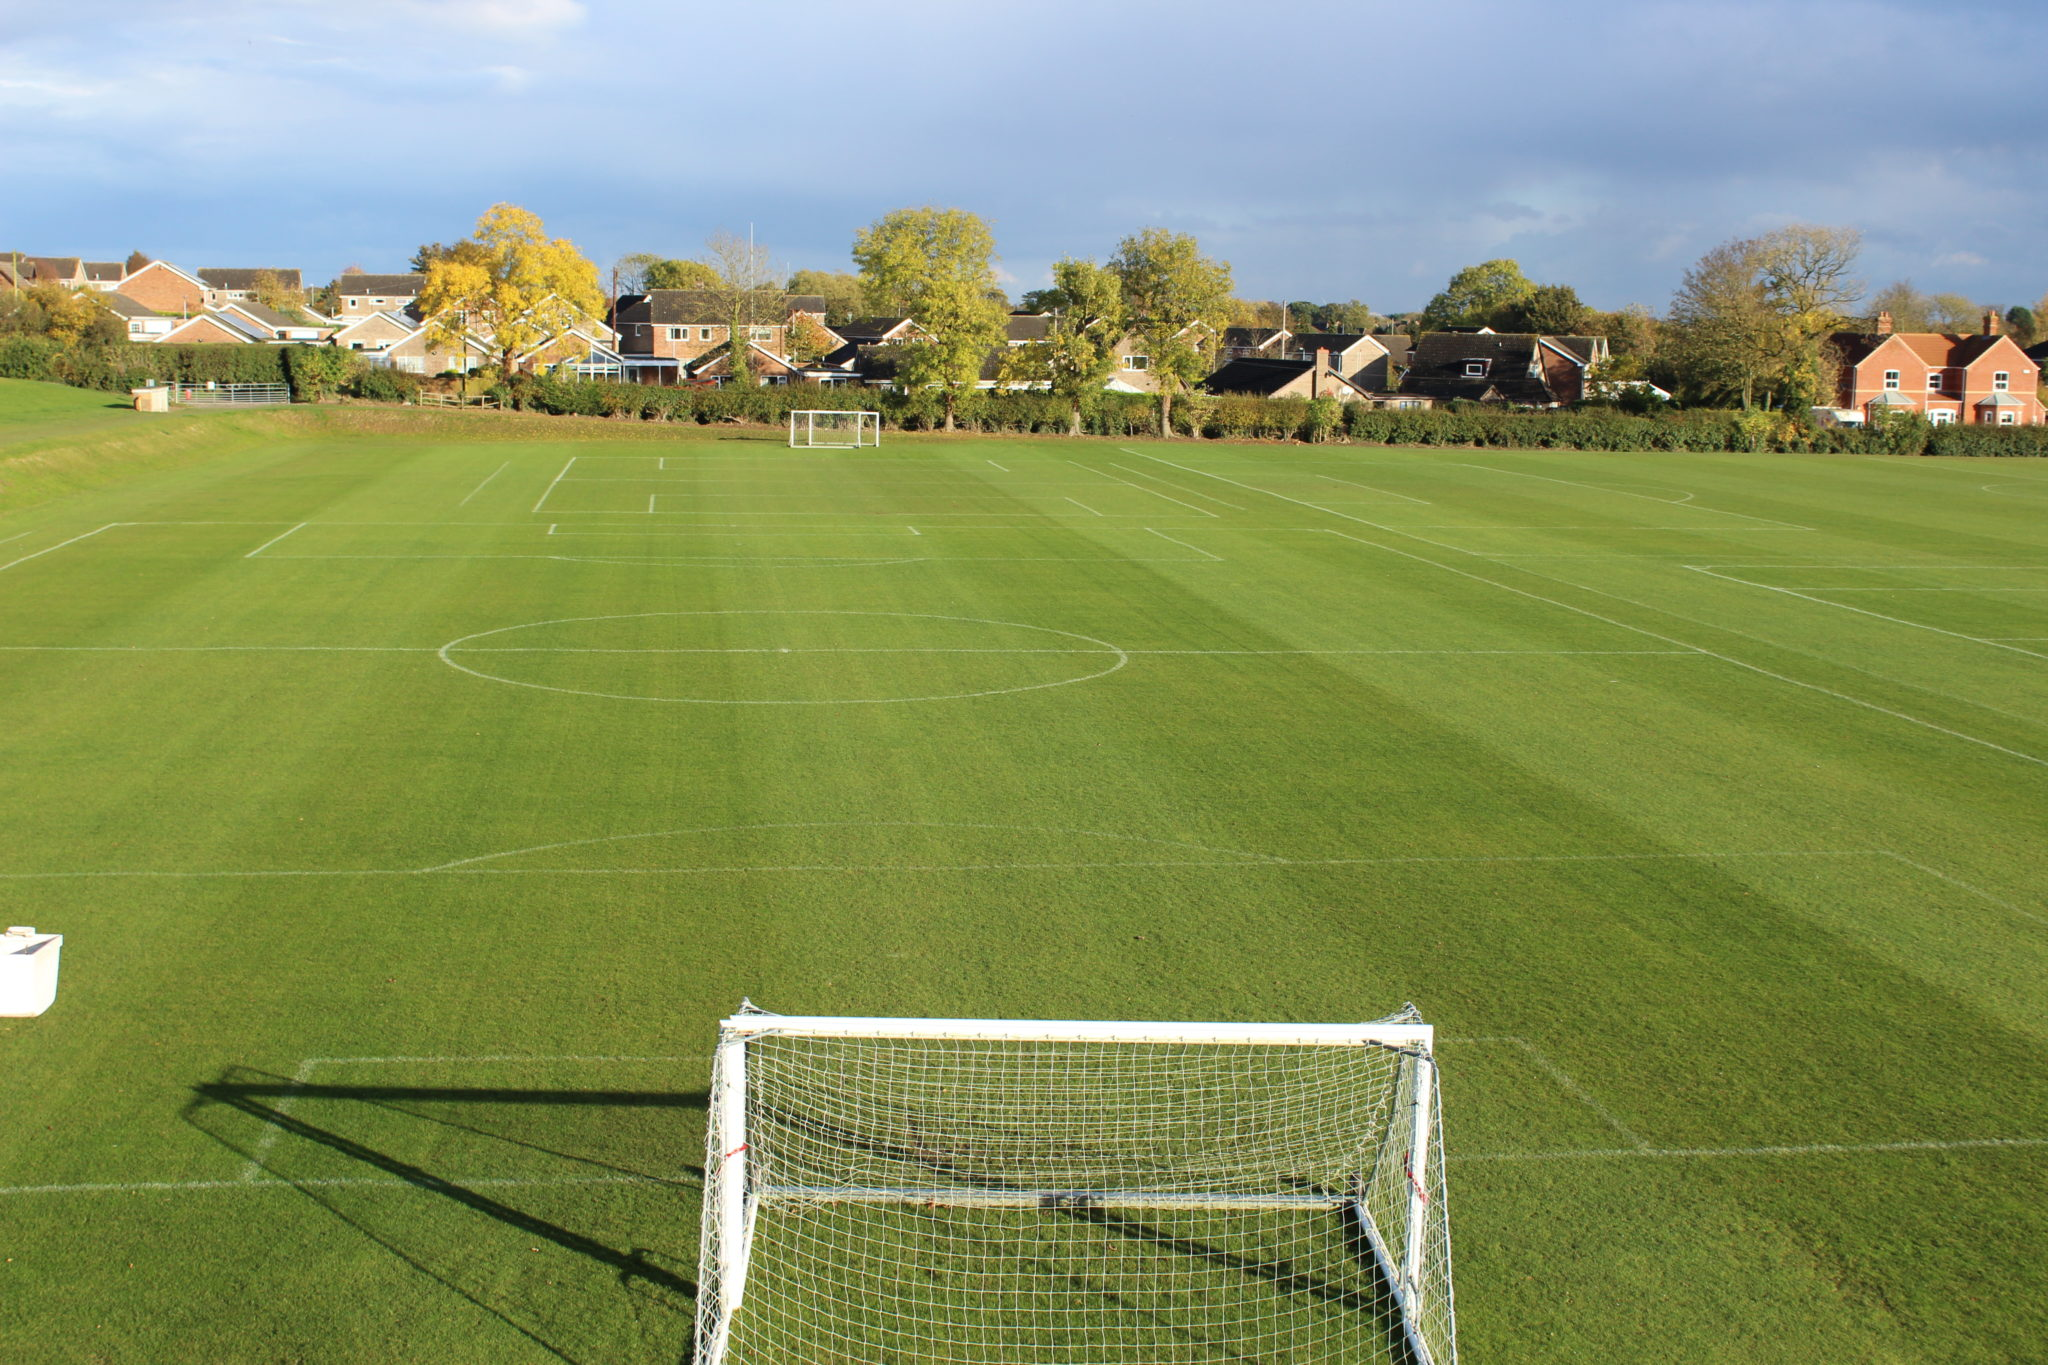 Back Football Pitch, London Road Pavilion, Louth, Lincolnshire